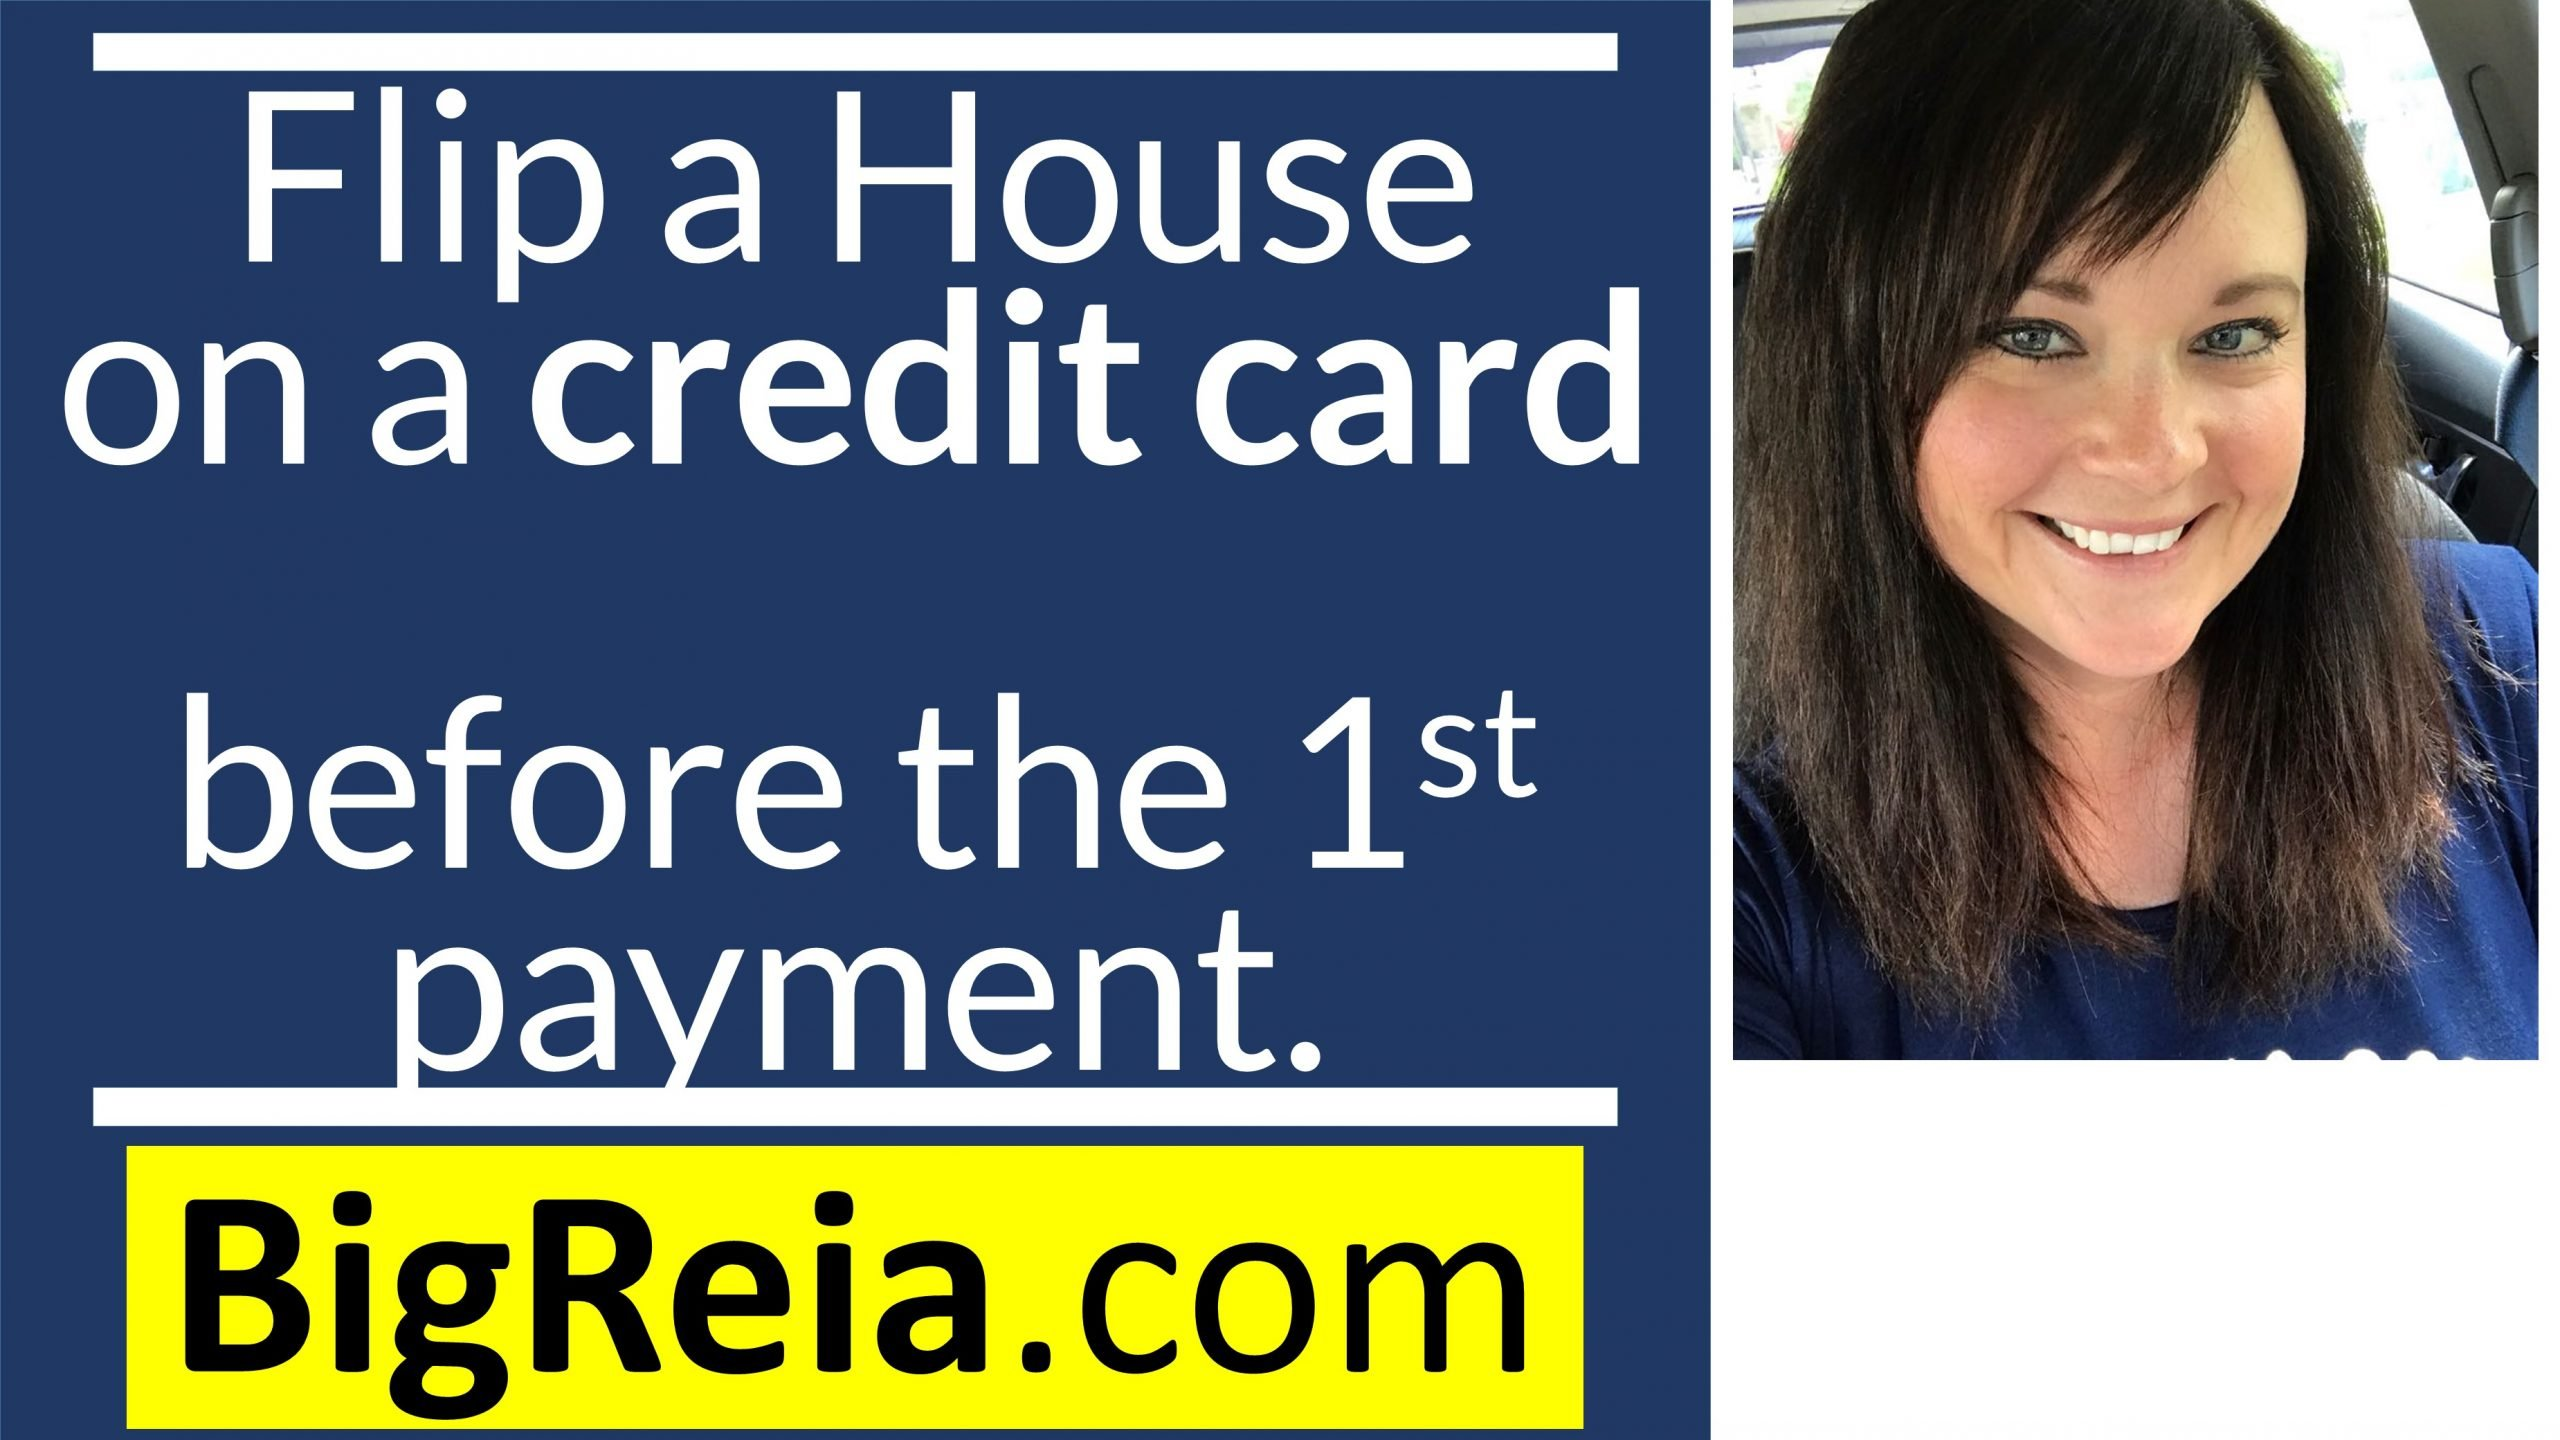 Can you flip a house on a credit card before the first payment is due?